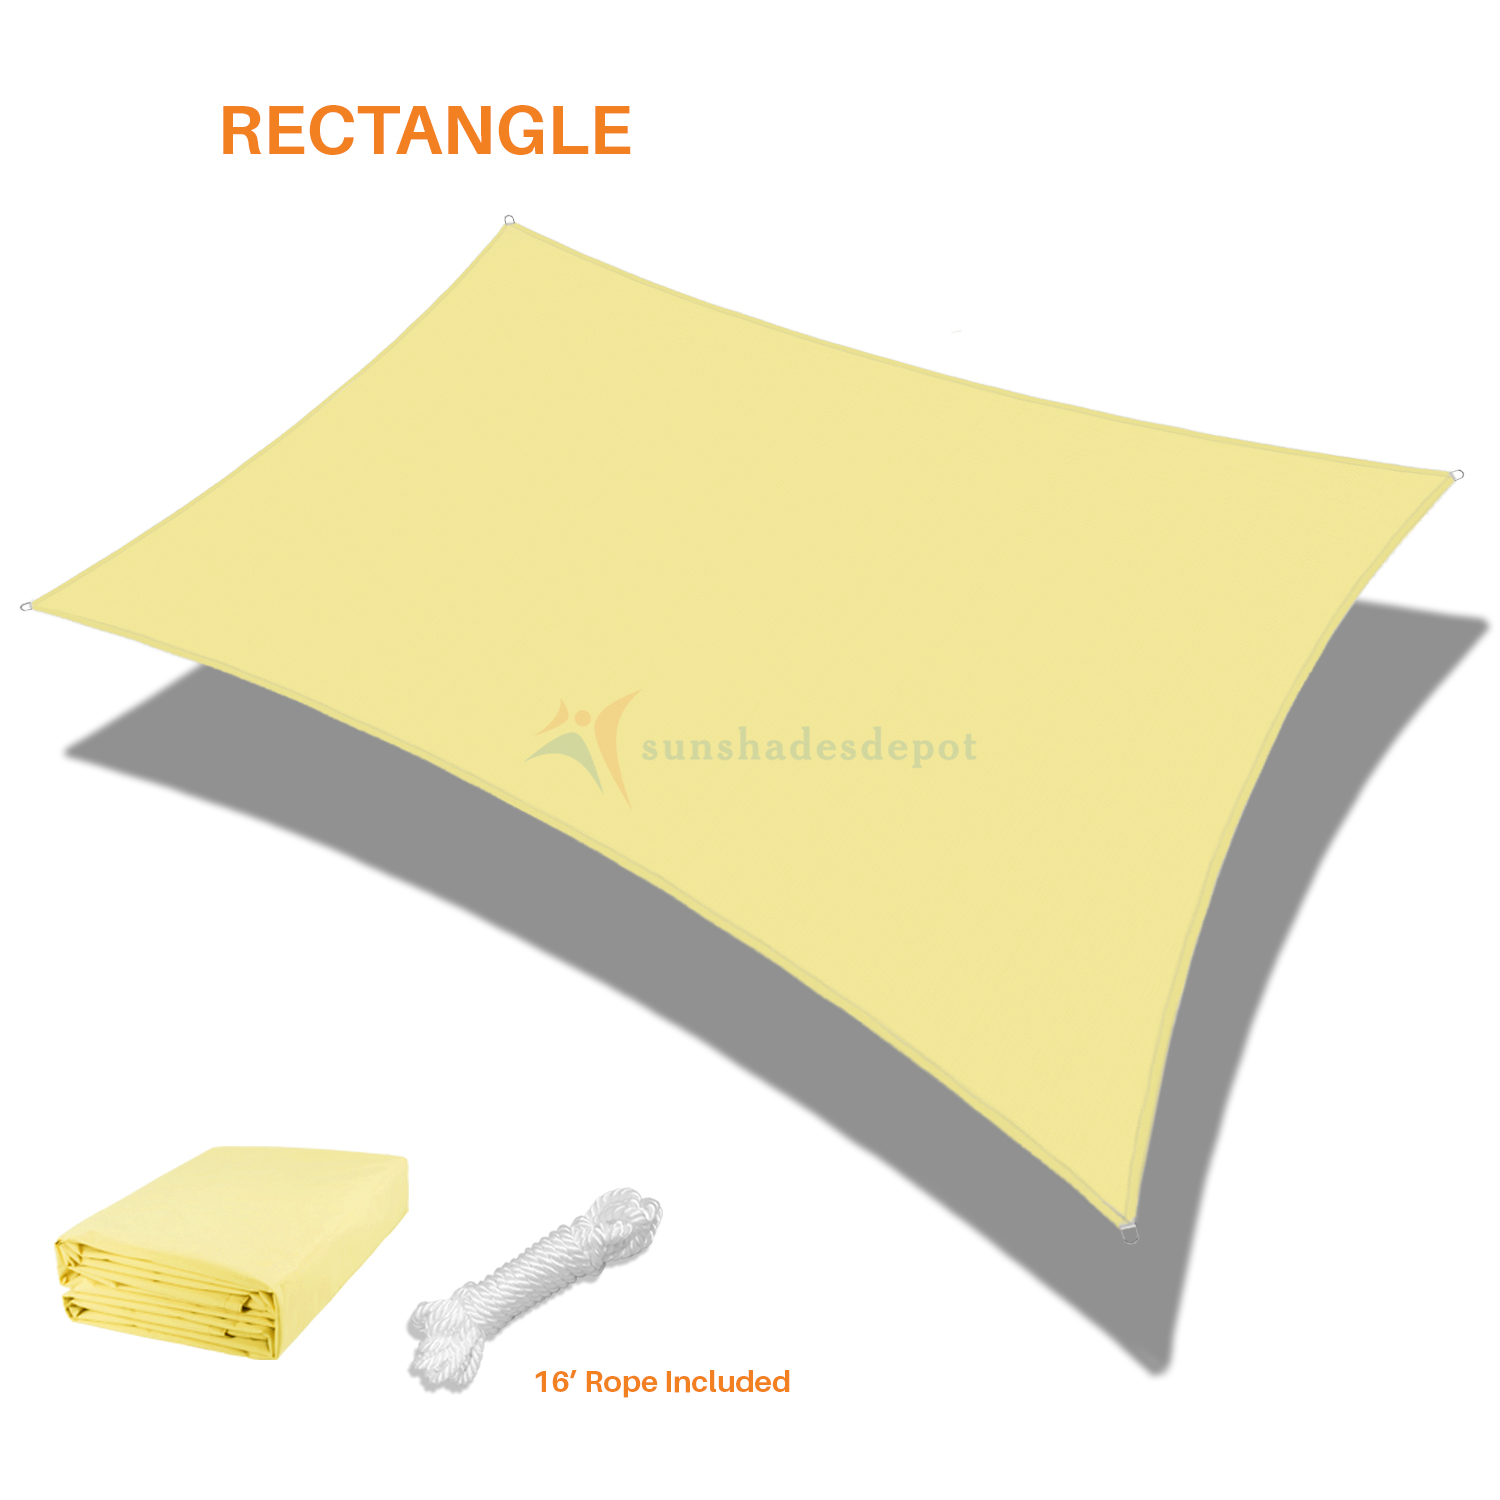 Sunshades Depot 5' x 11' Rectanlge Waterproof Knitted Shade Sail Curved Edge Canary Yellow 180 GSM UV Block Shade Fabric Pergola Carport Canopy Replacement Awning Customize Available